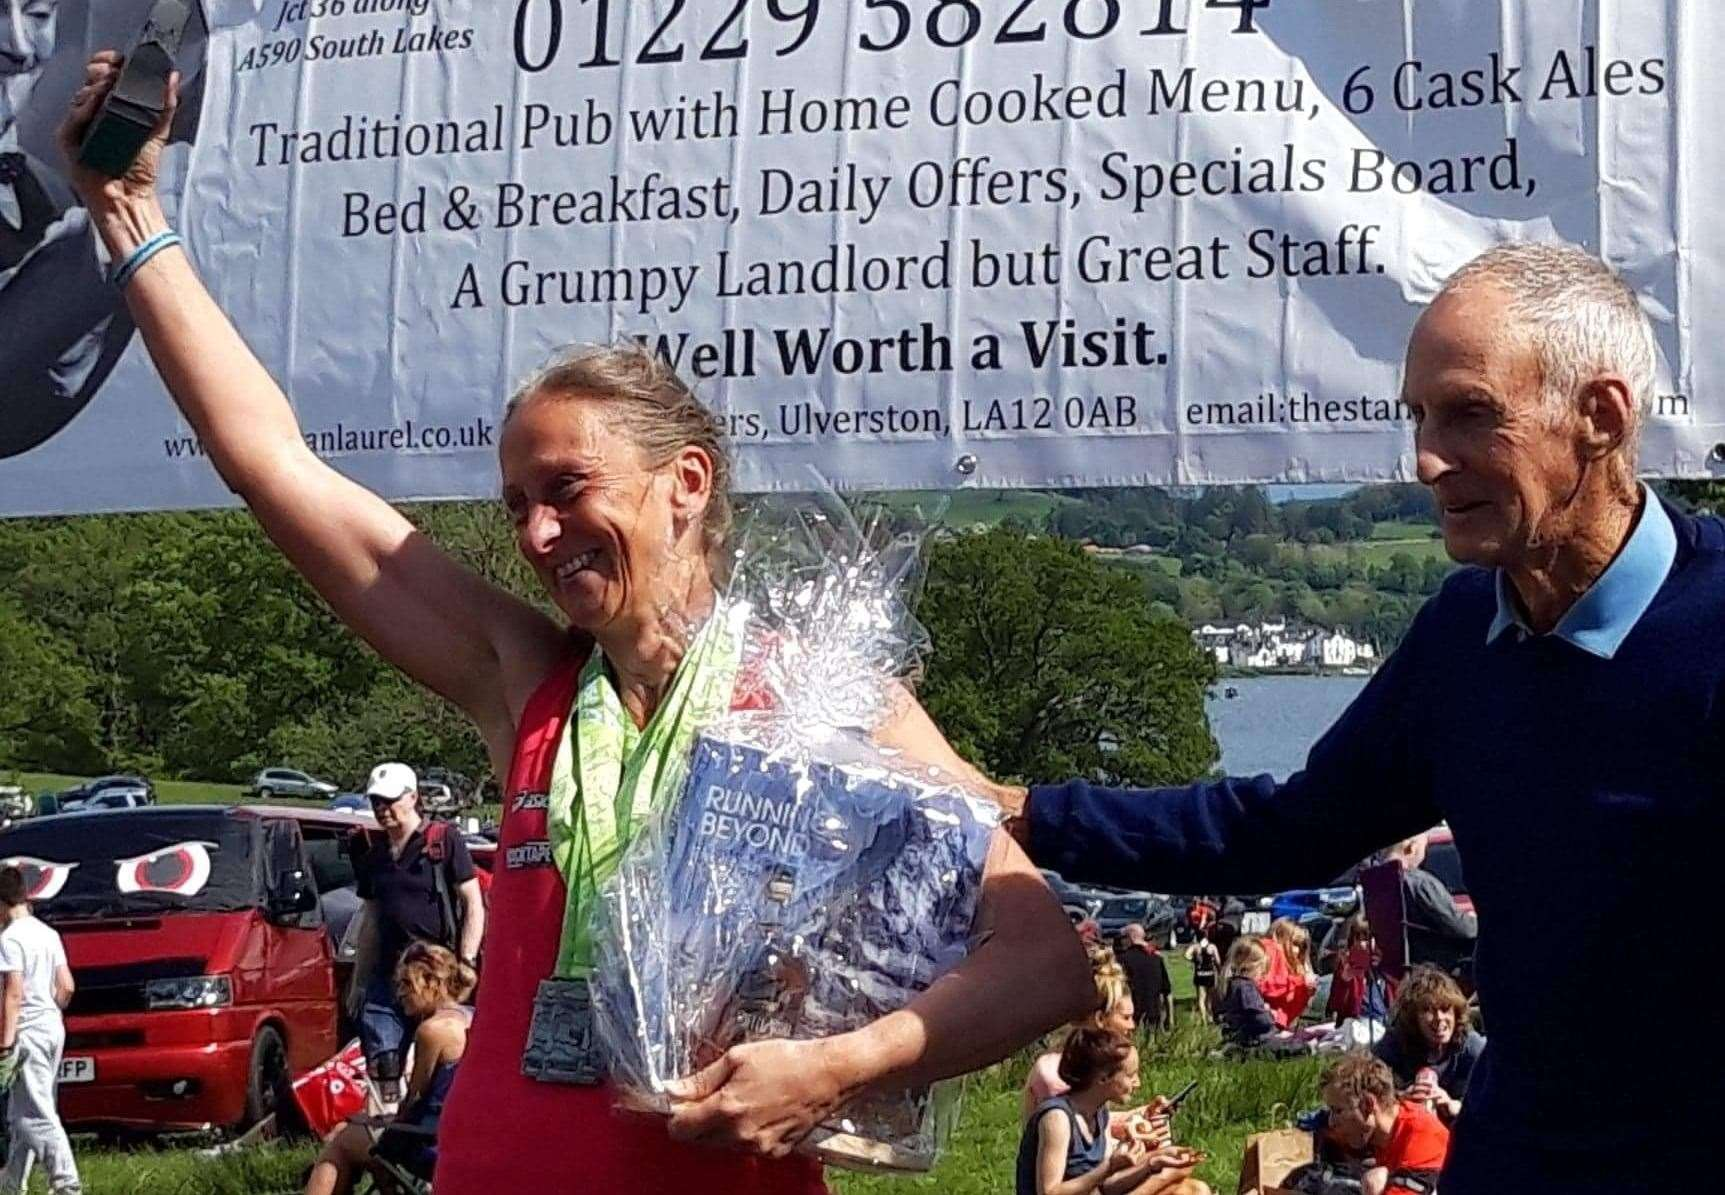 Diane Morris completes the Brathay 10 in 10, again, with legendary fell runner Joss Naylor MBE presenting her with a shield and flowers.Photo supplied.